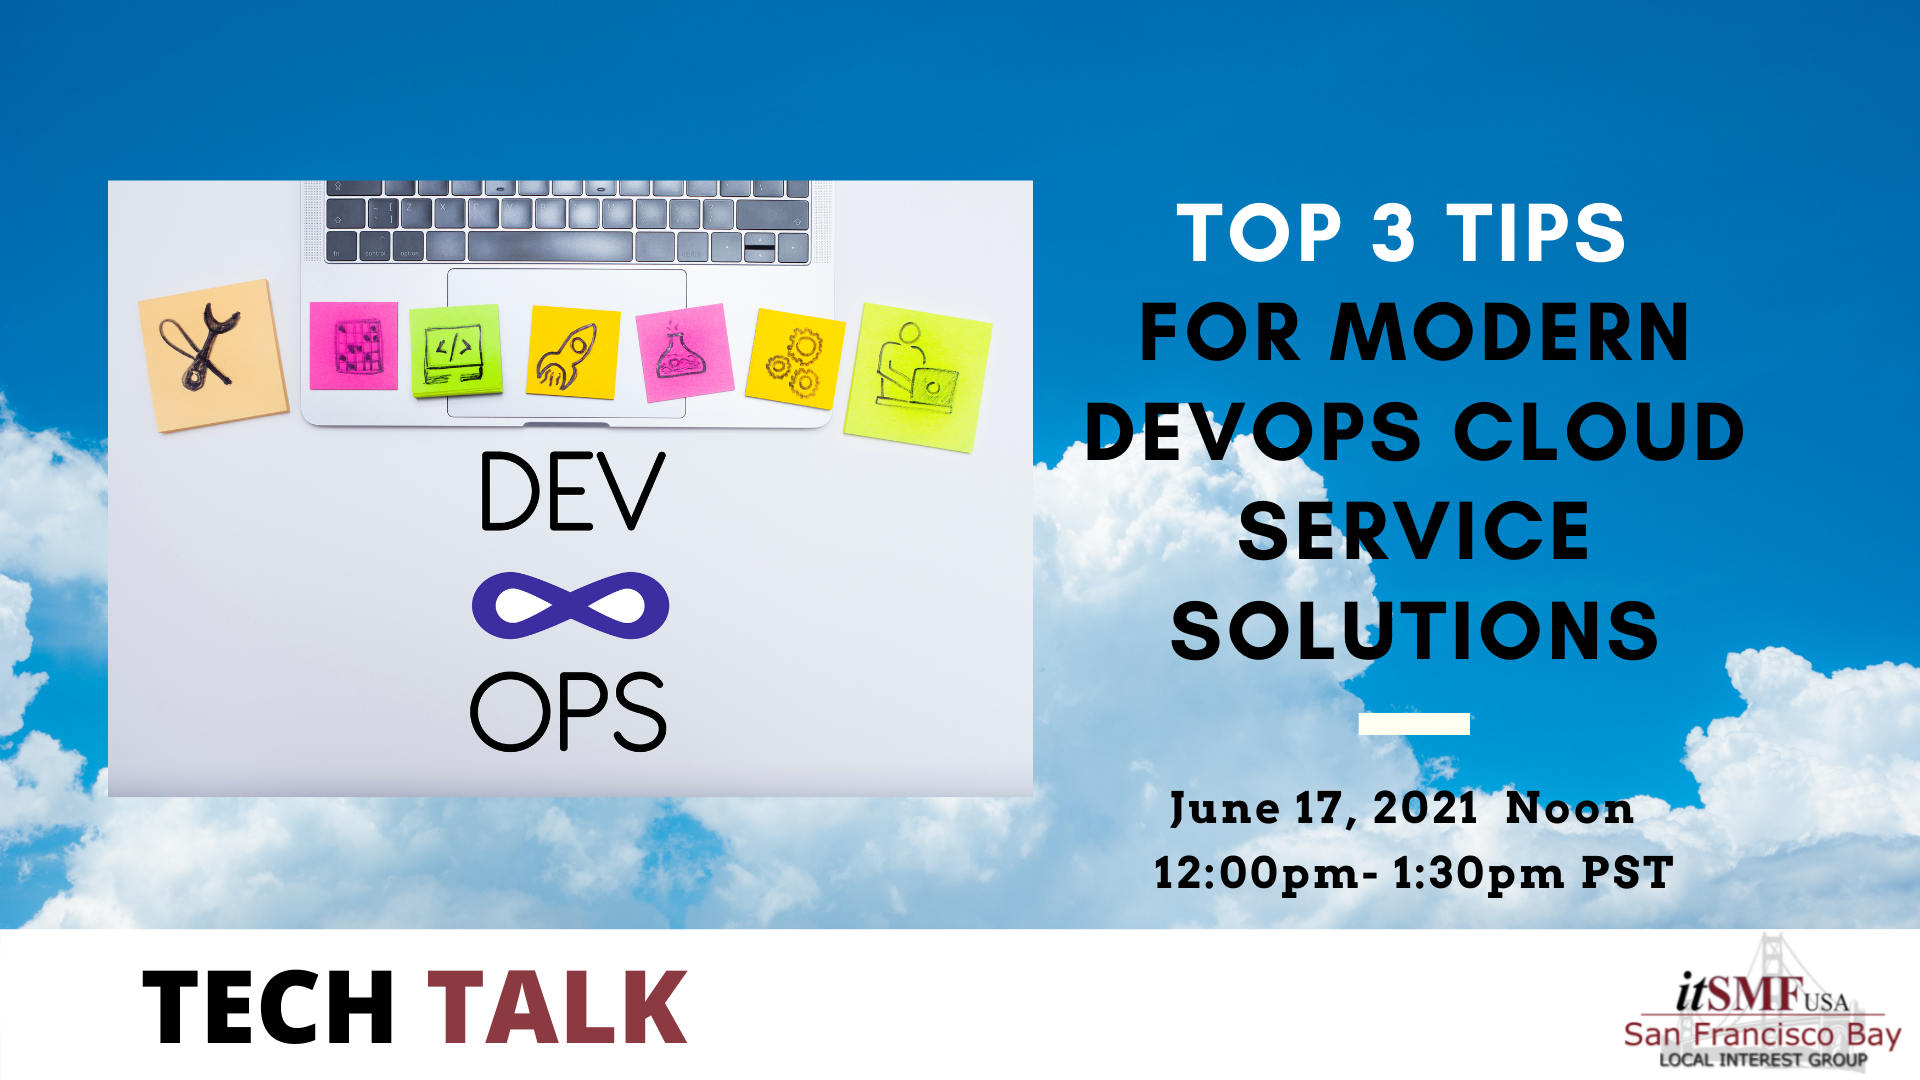 TECH TALK: Top 3 Things to Modernize for DevOps Cloud Service Solutions